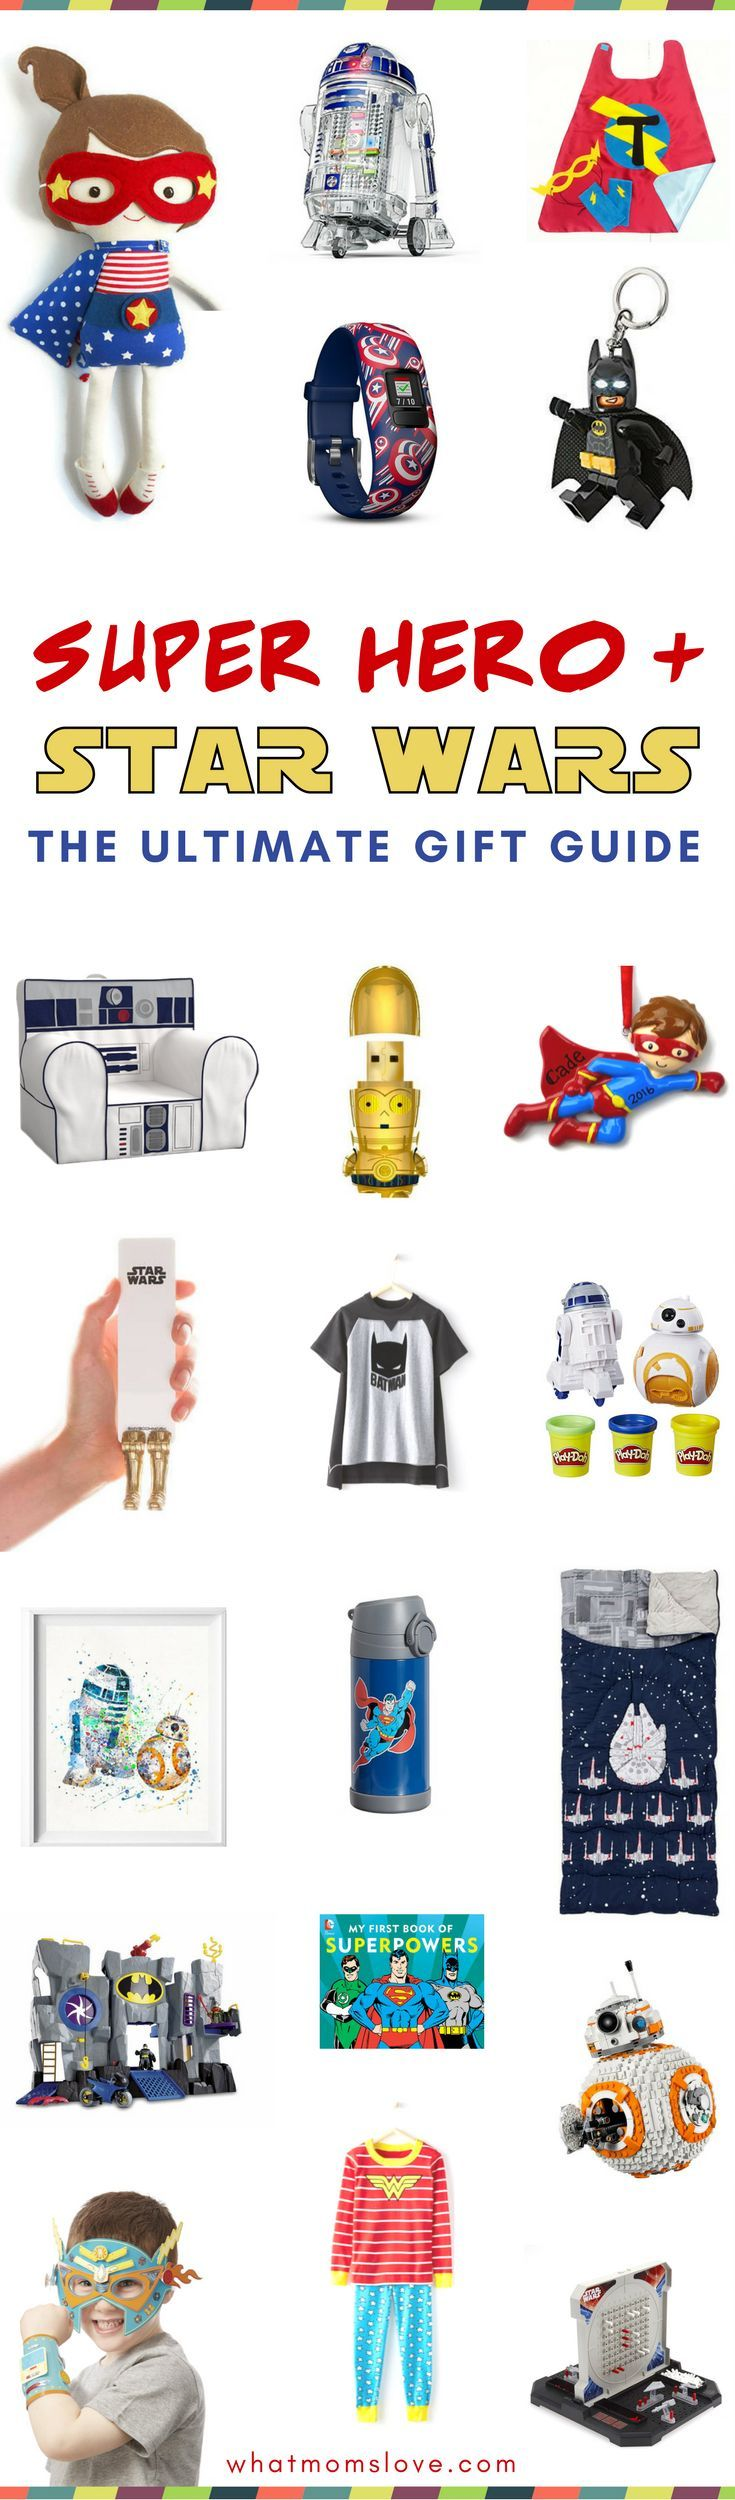 Unique gift ideas for kids who love super heroes or Star Wars   Best gifts for boys and girls including awesome toys, books, clothing, artwork and room decor!